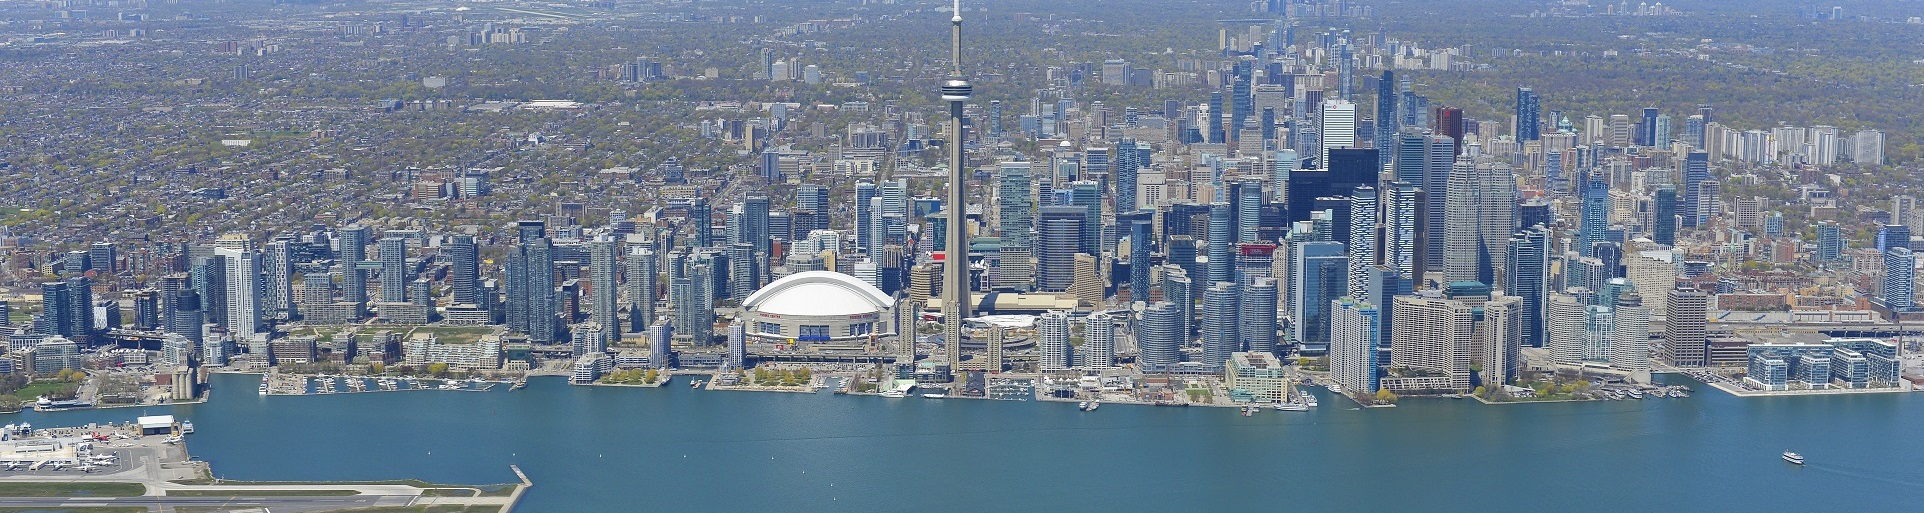 aerial photograph of Lake Ontario waterfront and Toronto skyline